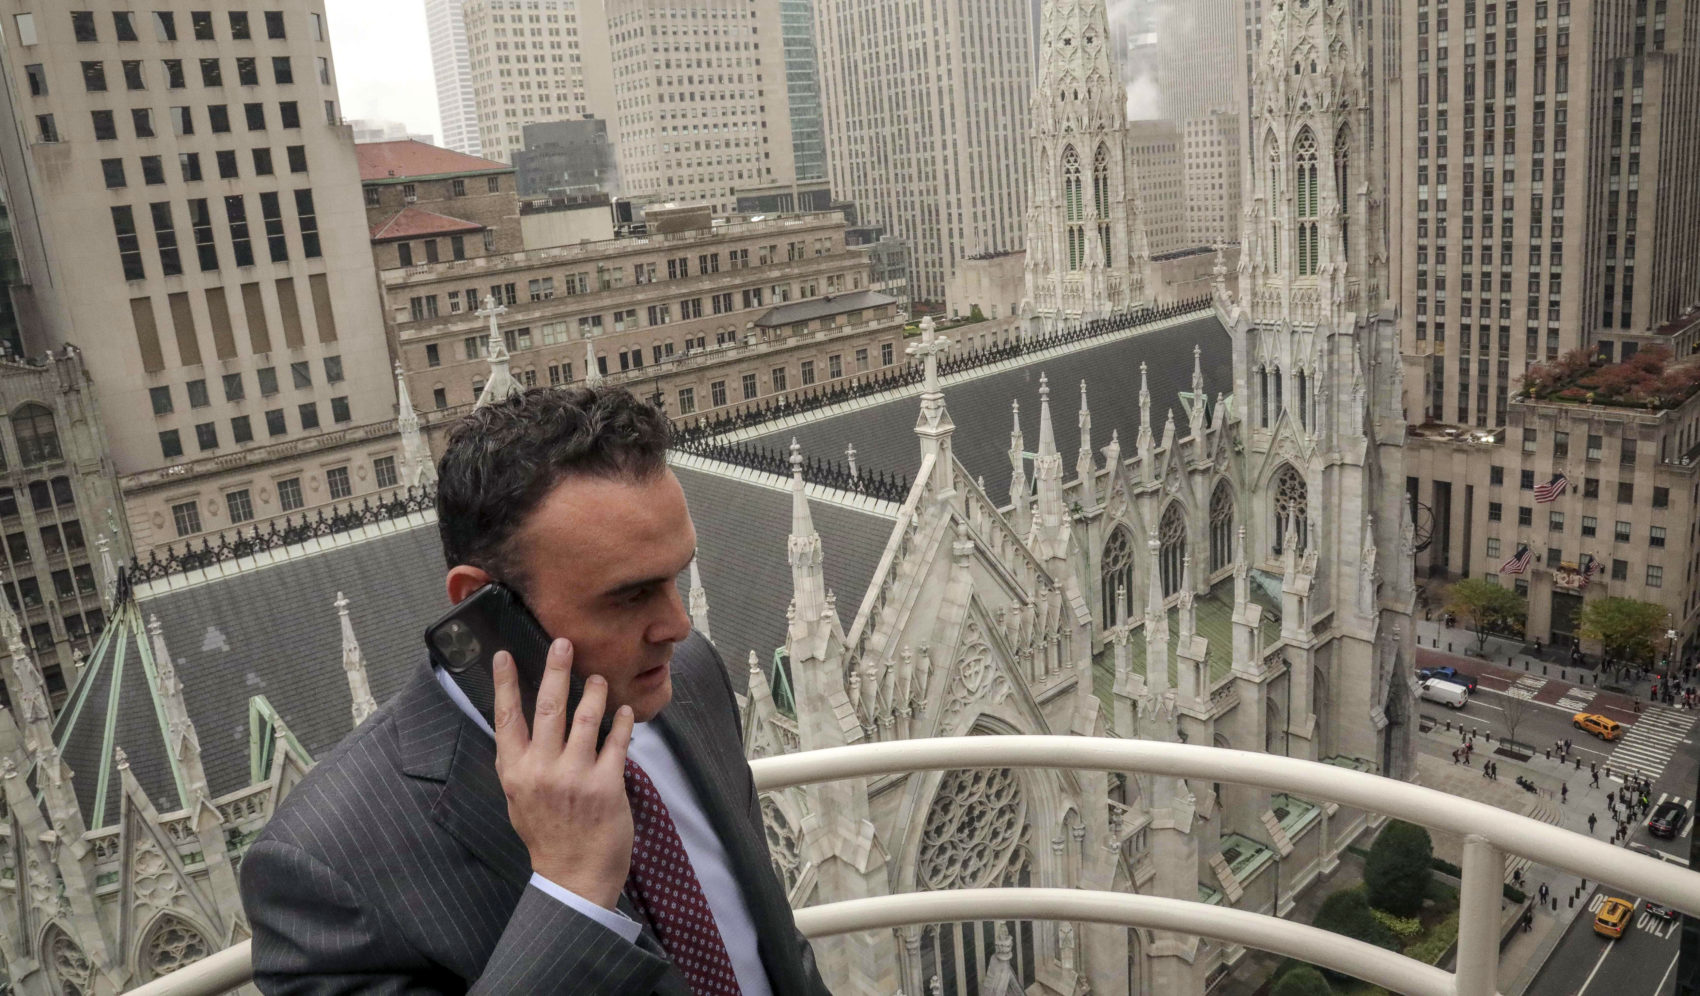 Attorney Adam Slater takes a phone call on a patio outside his high-rise Manhattan office overlooking St. Patrick's Cathedral, in New York. Slater's firm is representing clients accusing the Roman Catholic Church of sexual abuse. (Bebeto Matthews/AP)